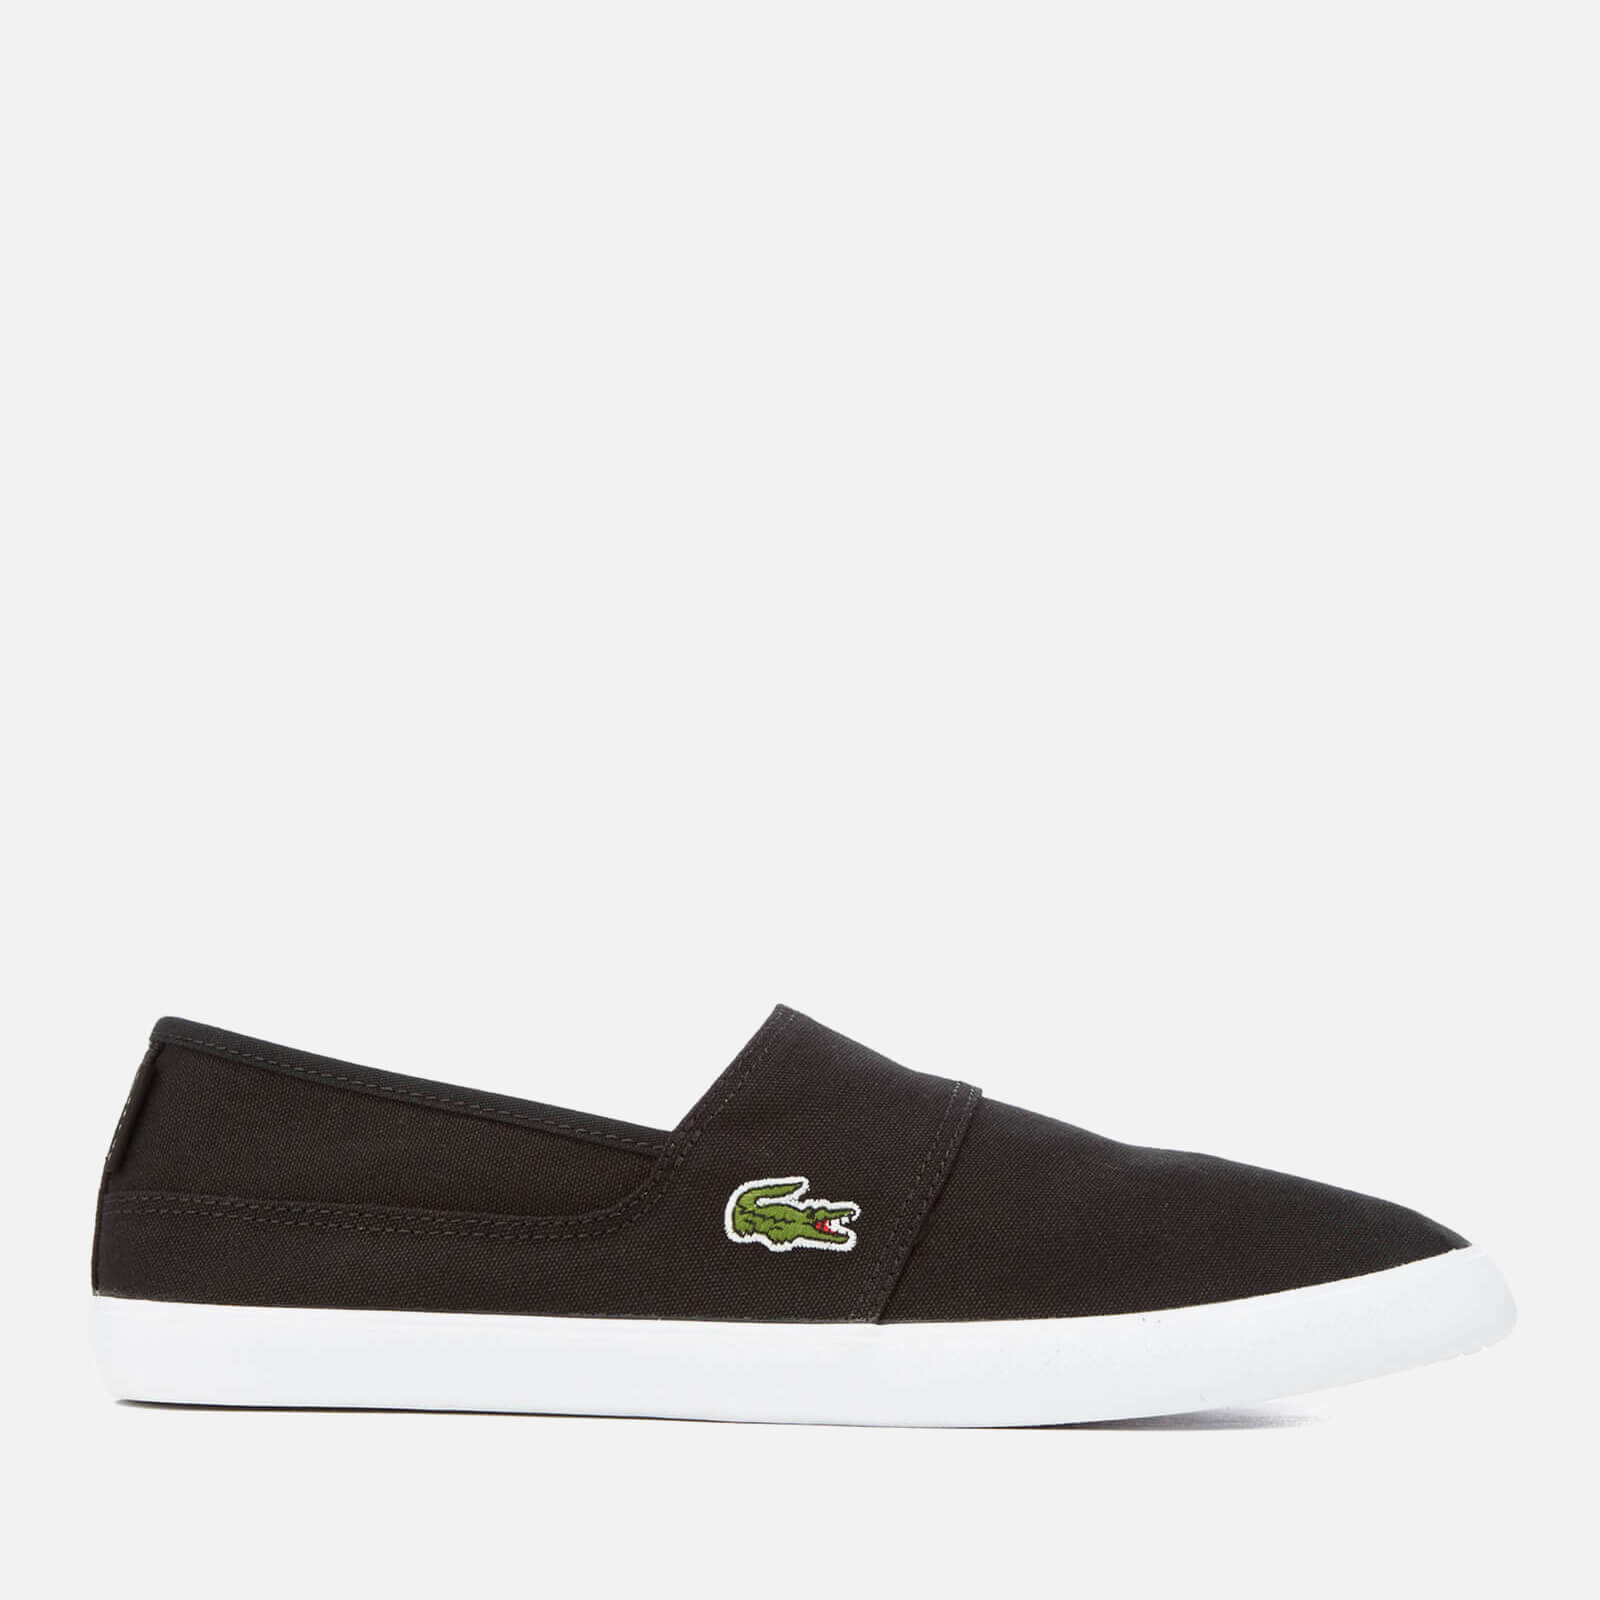 456c6946775e51 Lacoste Men s Marice Canvas Slip-On Pumps - Black - Free UK Delivery over  £50